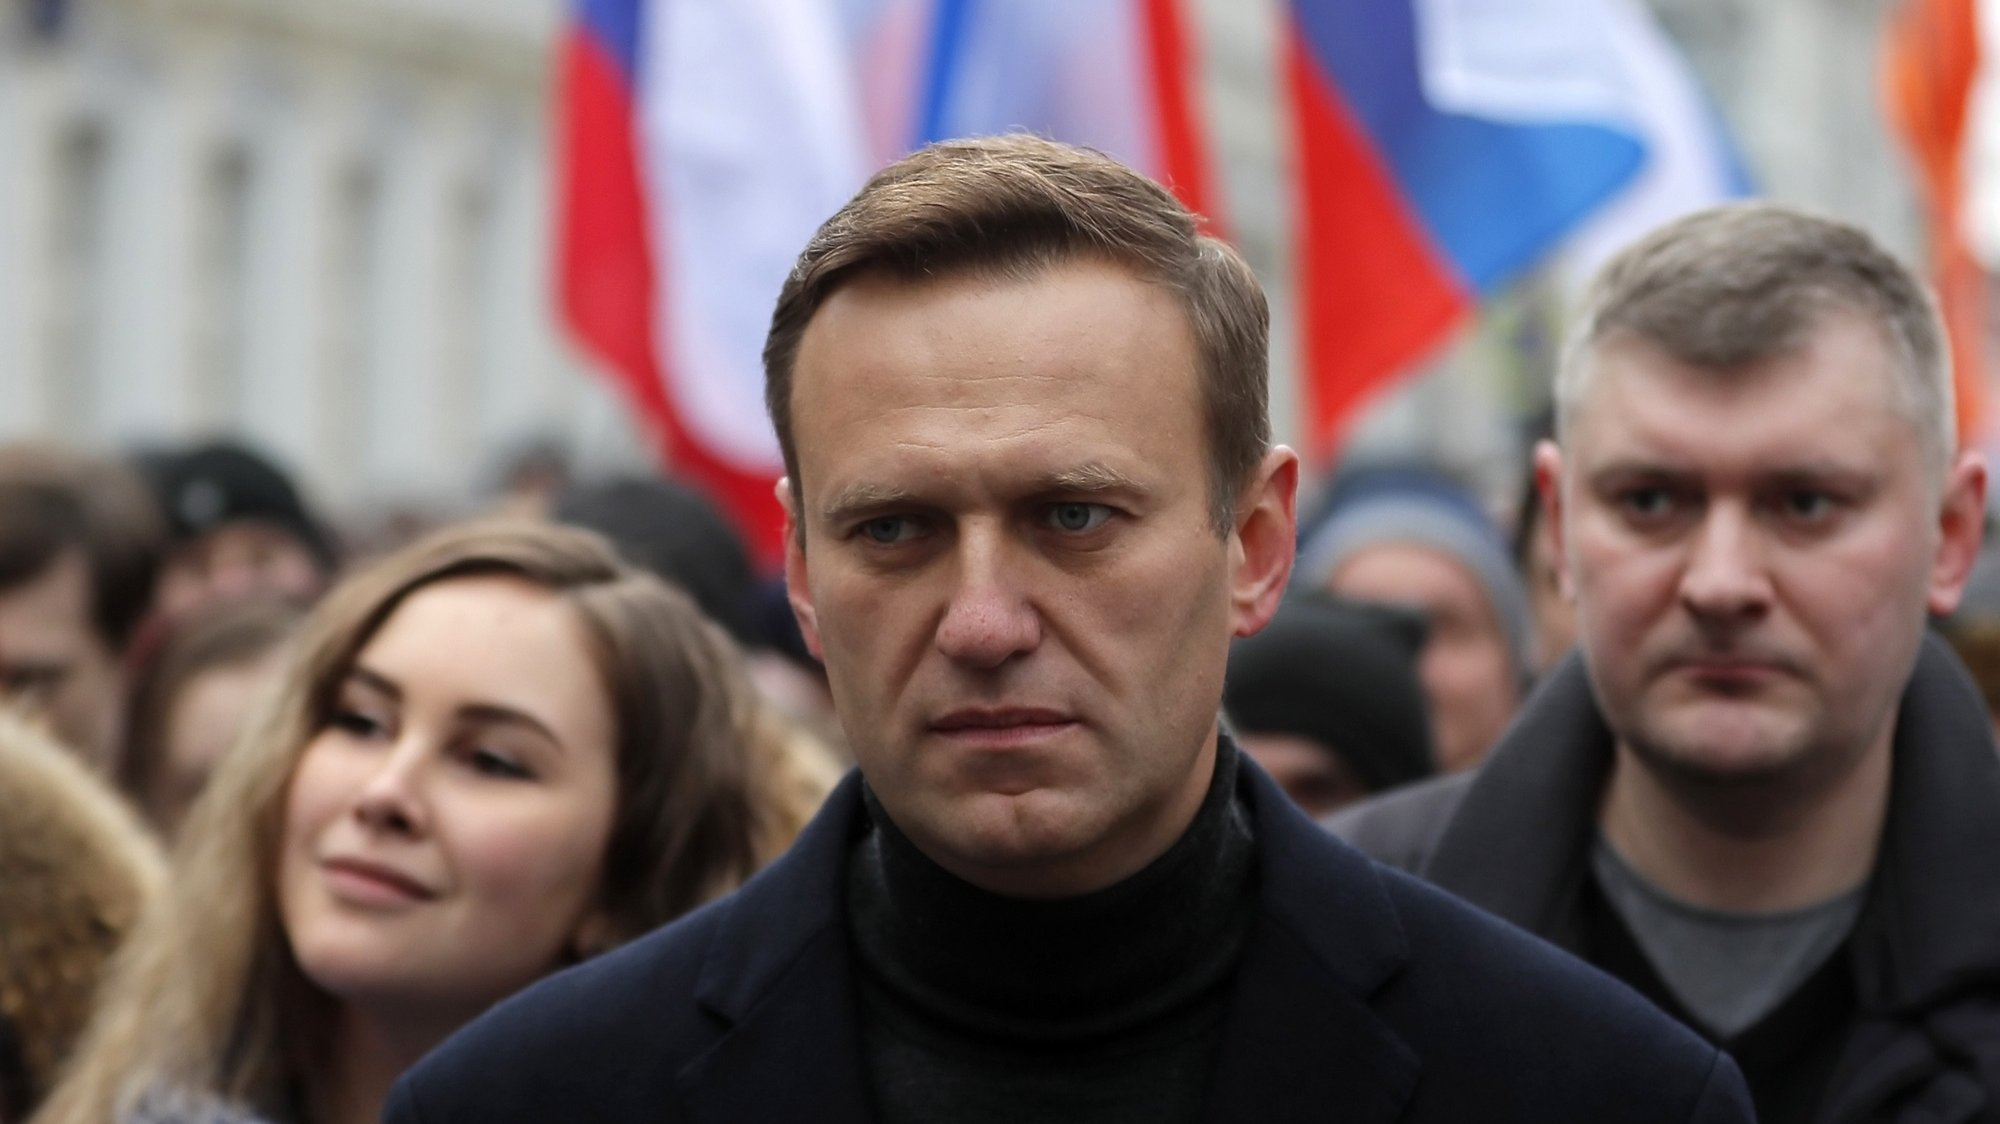 epa08667732 (FILE) - Russian opposition leader and anti-corruption activist Alexei Navalny (C) takes part in a memorial march for Boris Nemtsov marking the fifth anniversary of his assassination in Moscow, Russia, 29 February 2020 (reissued 14 September 2020). The German government spokesperson on 14 September 2020 said laboratories in France and Sweden have confirmed that Navalny was poisoned with a nerve agent from the Novichok group. Navalny is treated at the Charite hospital in Berlin since 22 August 2020. He was first placed in an hospital in Omsk, Russia, after he felt bad on board of a plane on his way from Tomsk to Moscow. The flight was interrupted and after landing in Omsk Navalny was delivered to hospital with a suspicion on a toxic poisoning.  EPA/YURI KOCHETKOV  EPA-EFE/YURI KOCHETKOV